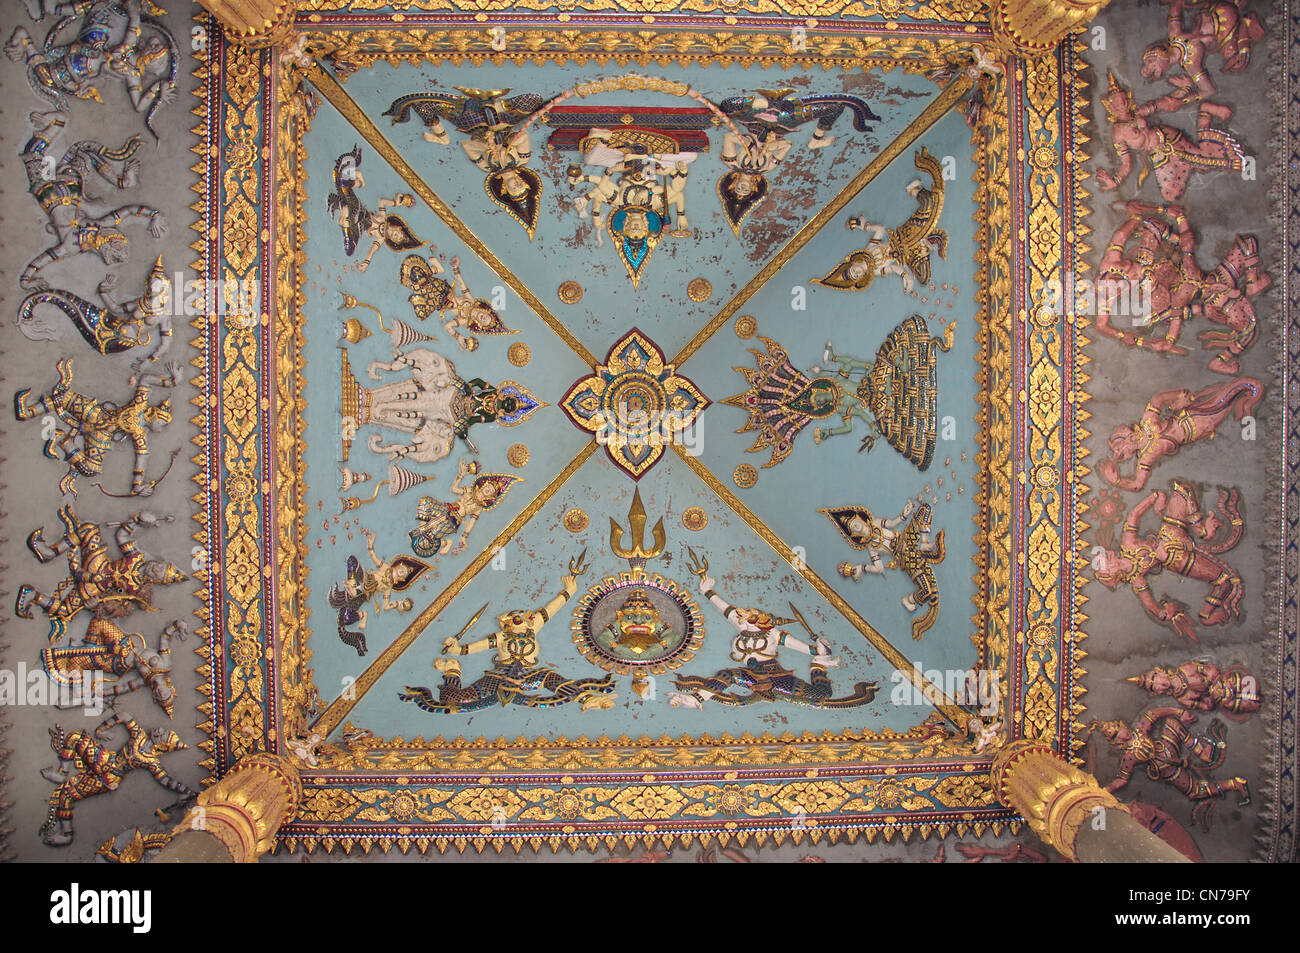 Interior decoration with depictions of the gods, Patuxai Gate, Thannon Lanxing, Vientiane, Vientiane Prefecture, - Stock Image